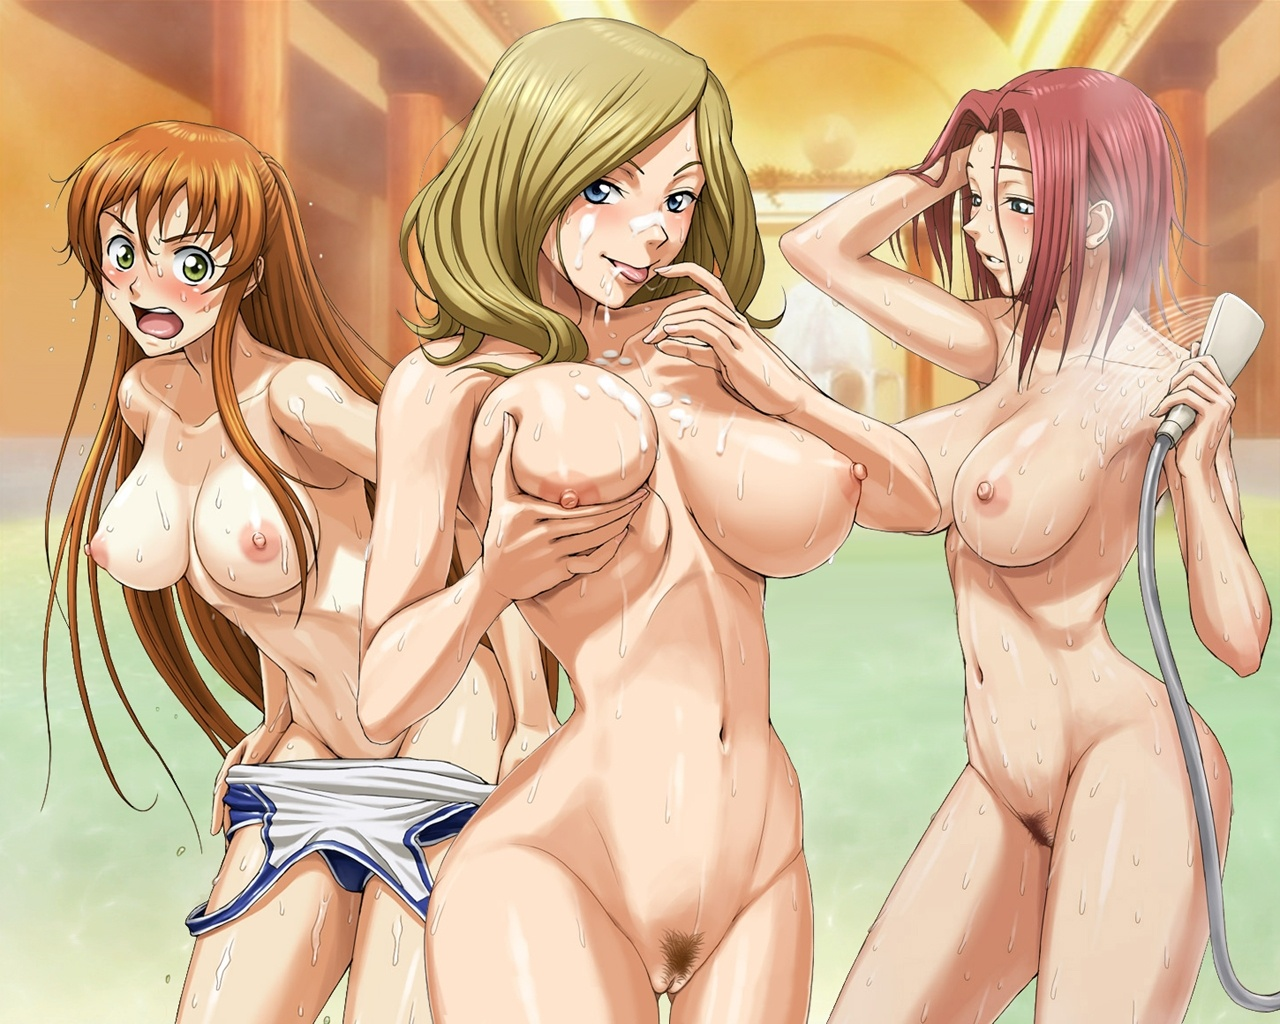 women nude Anime